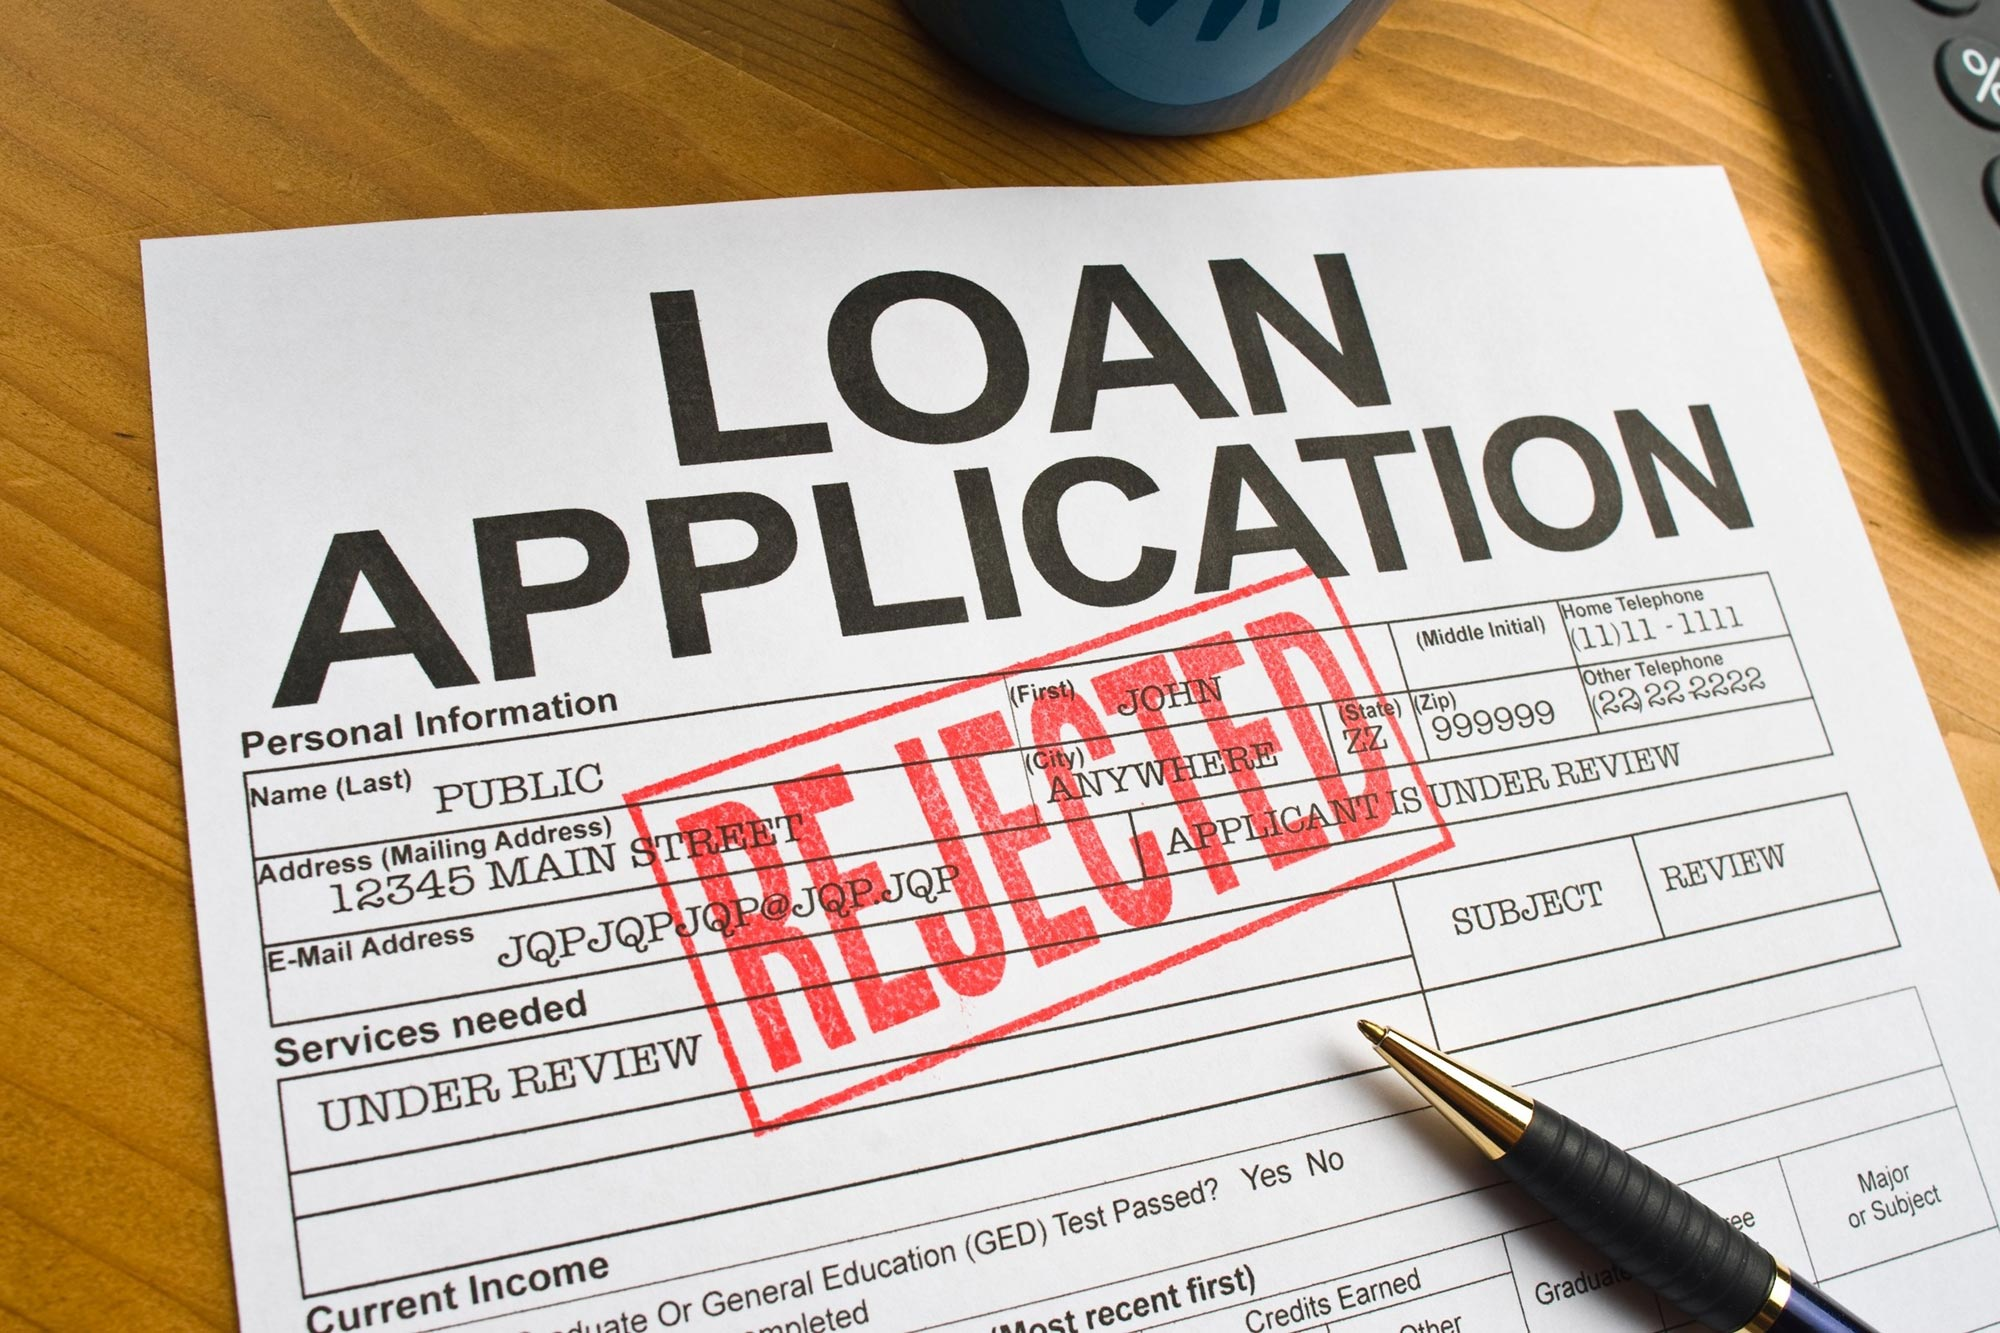 No! Loan Applications Processed Around Midday Are More Likely to Be Rejected